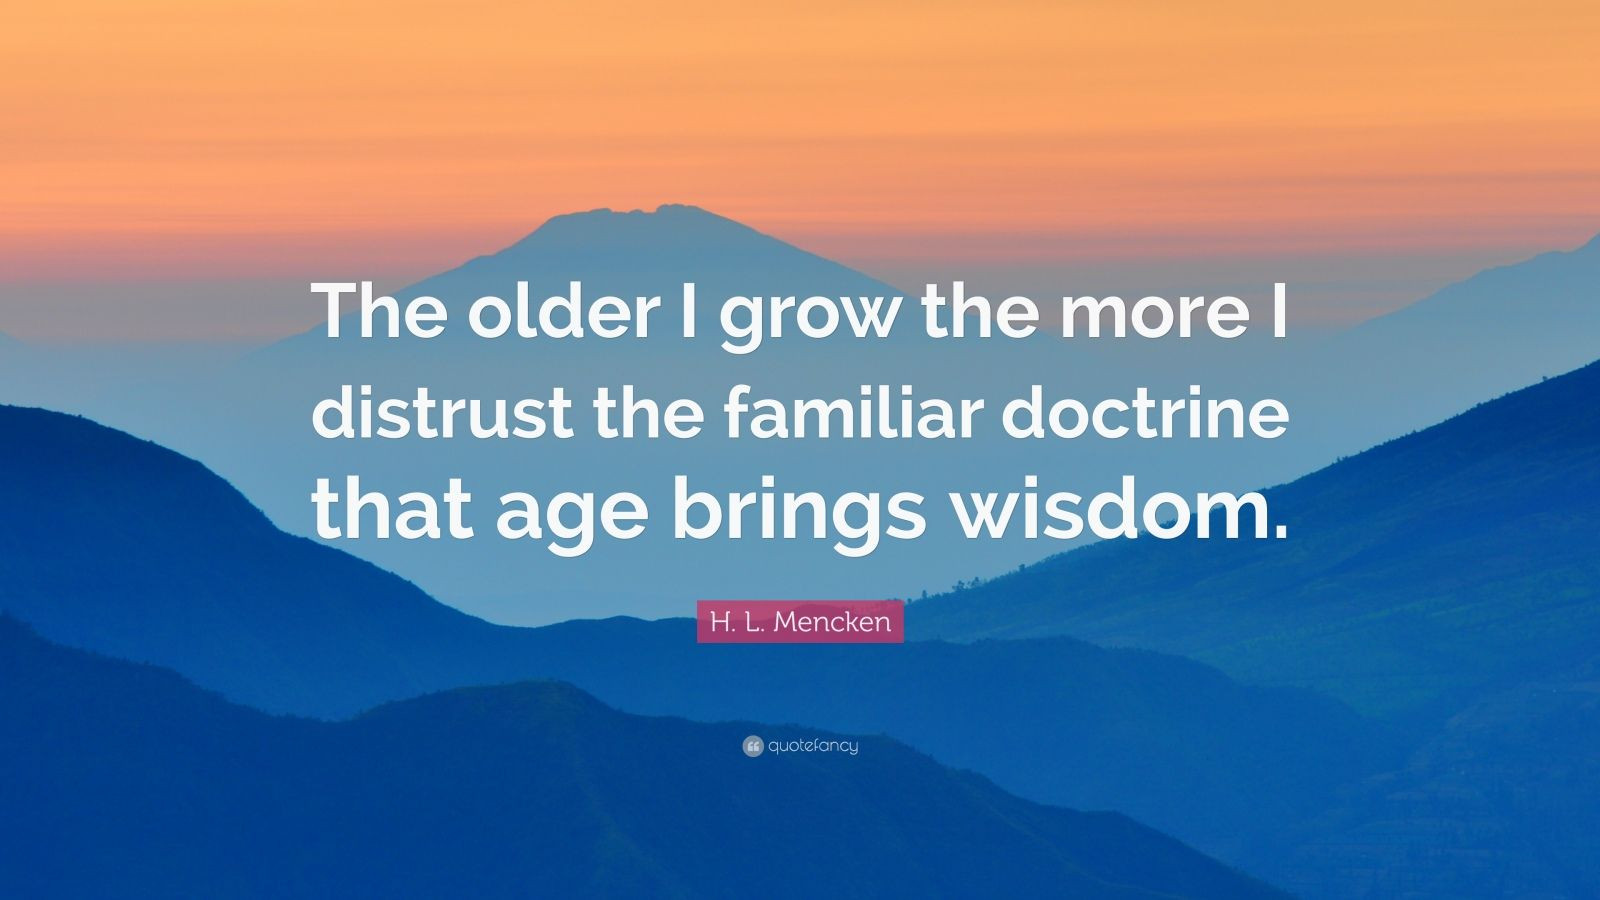 """H. L. Mencken Quote: """"The older I grow the more I distrust the familiar doctrine that age brings wisdom."""""""